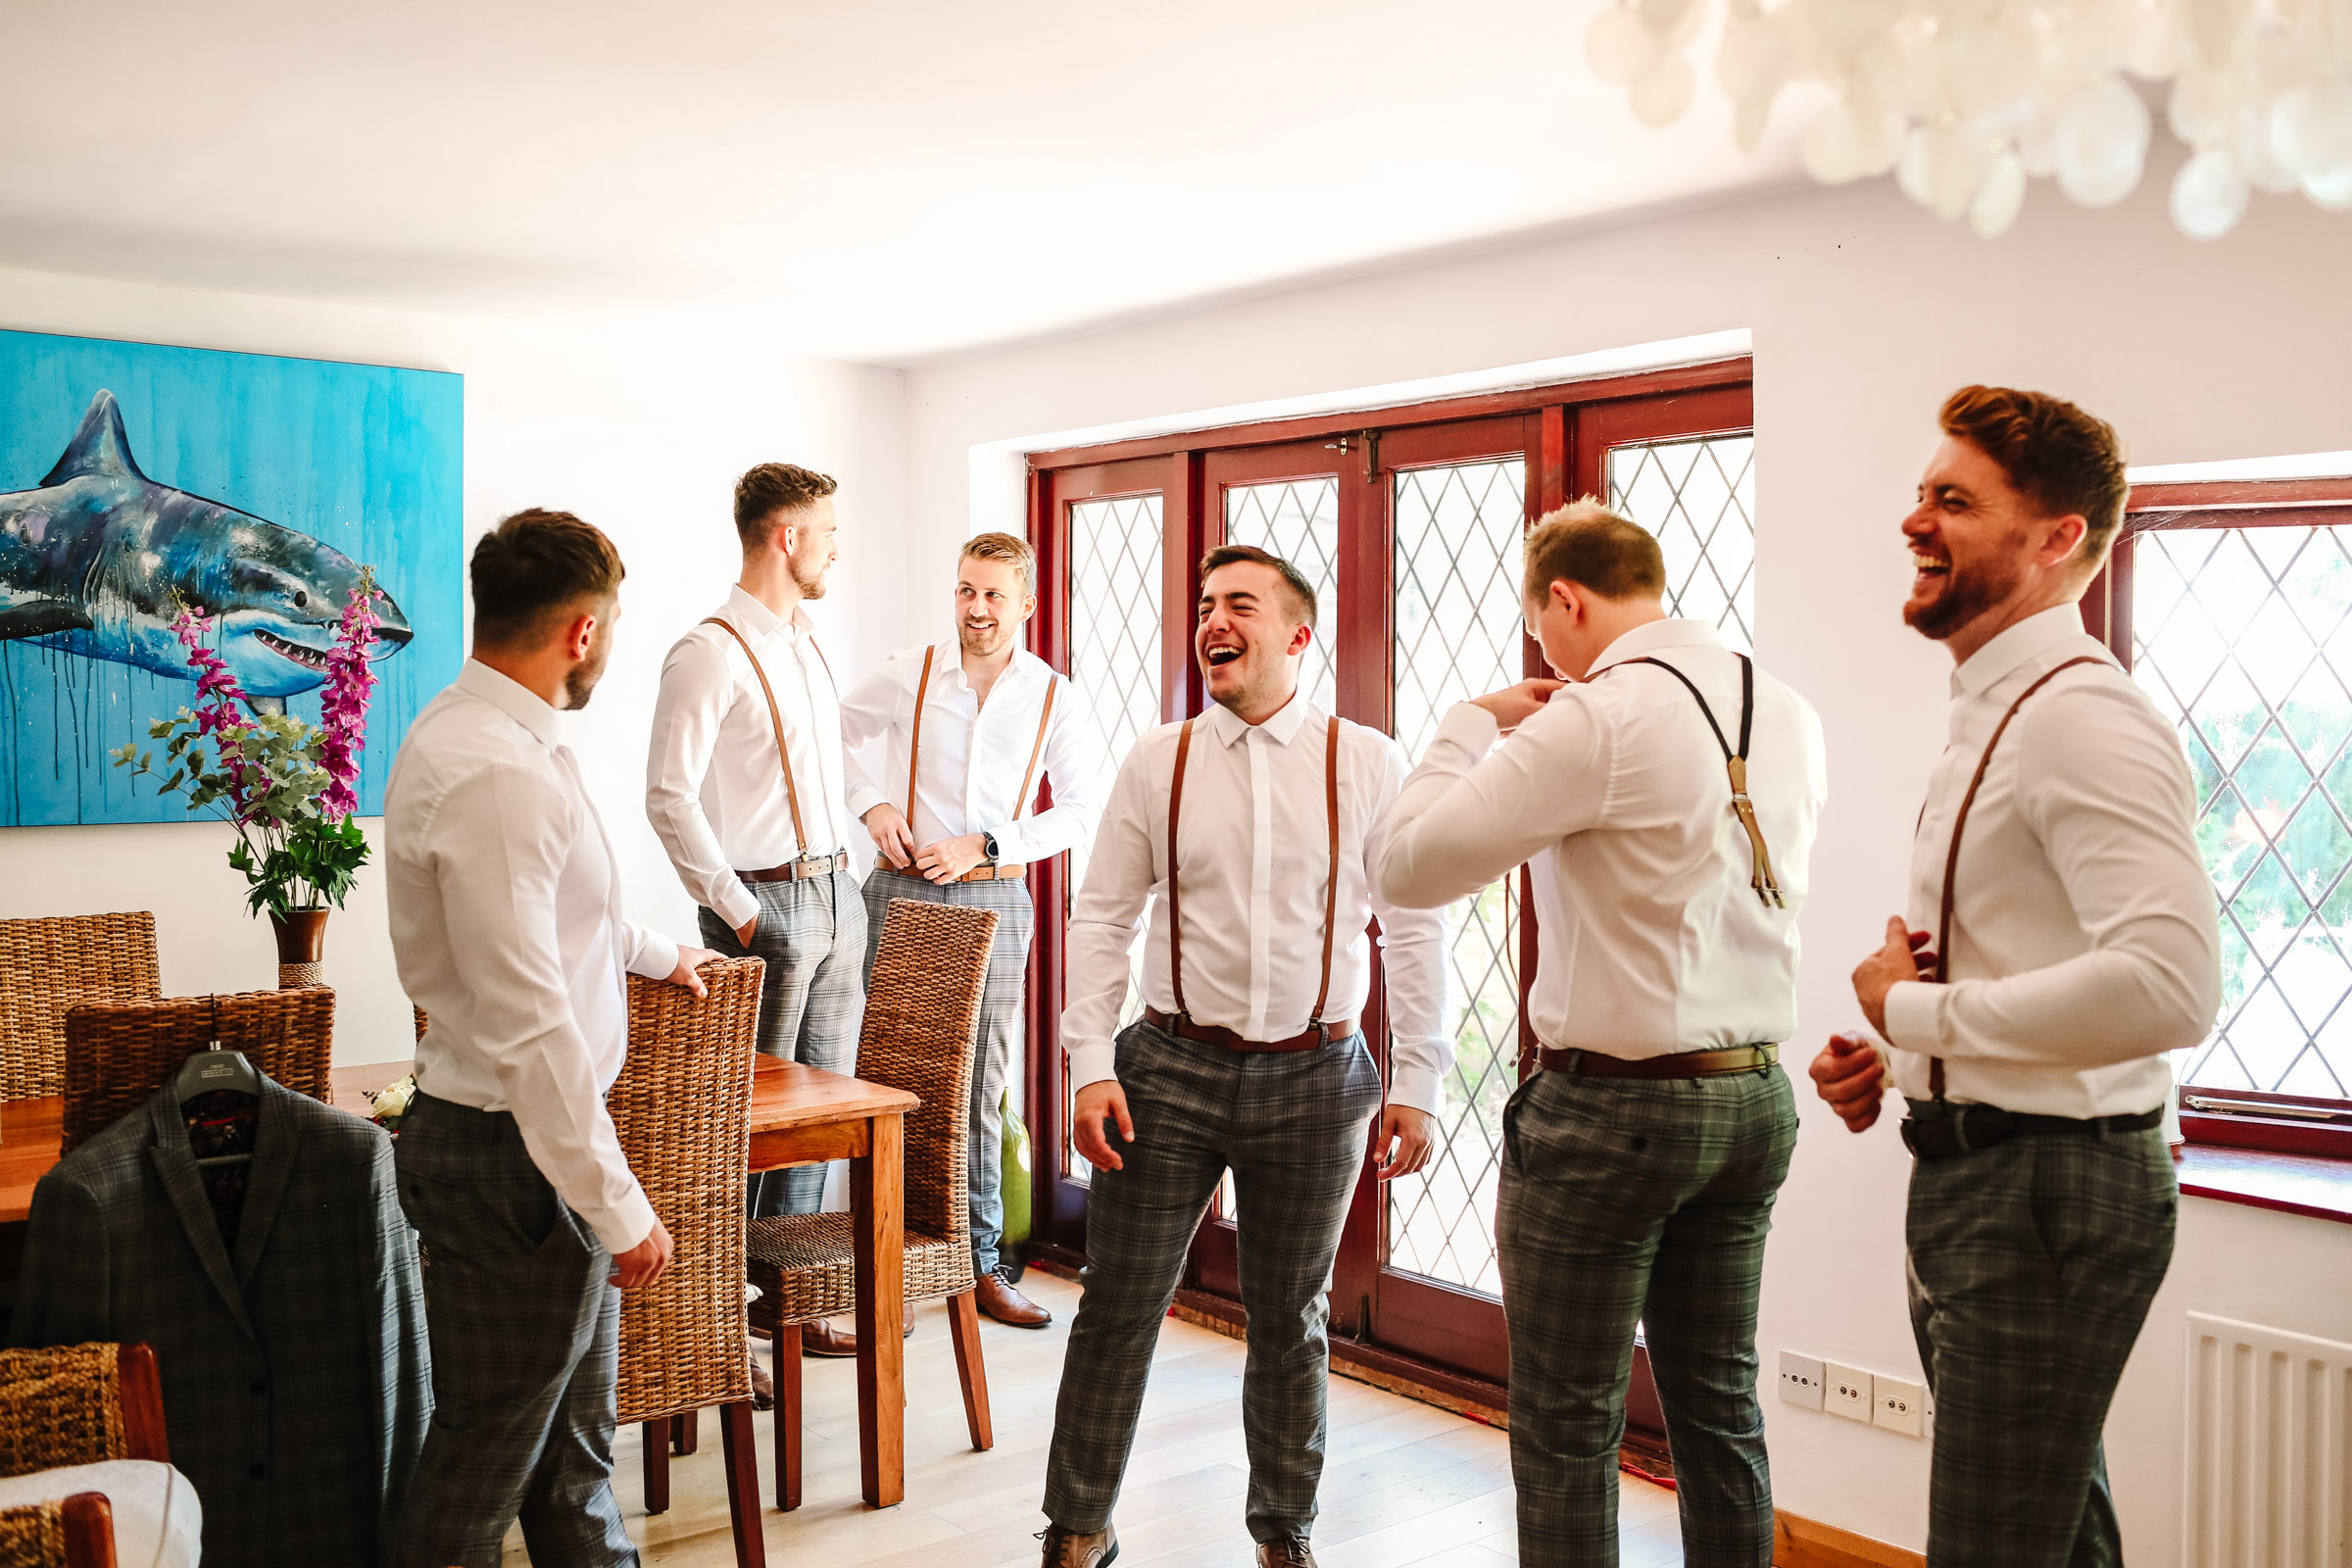 groomsmen laughing as they get dressed ready for wedding